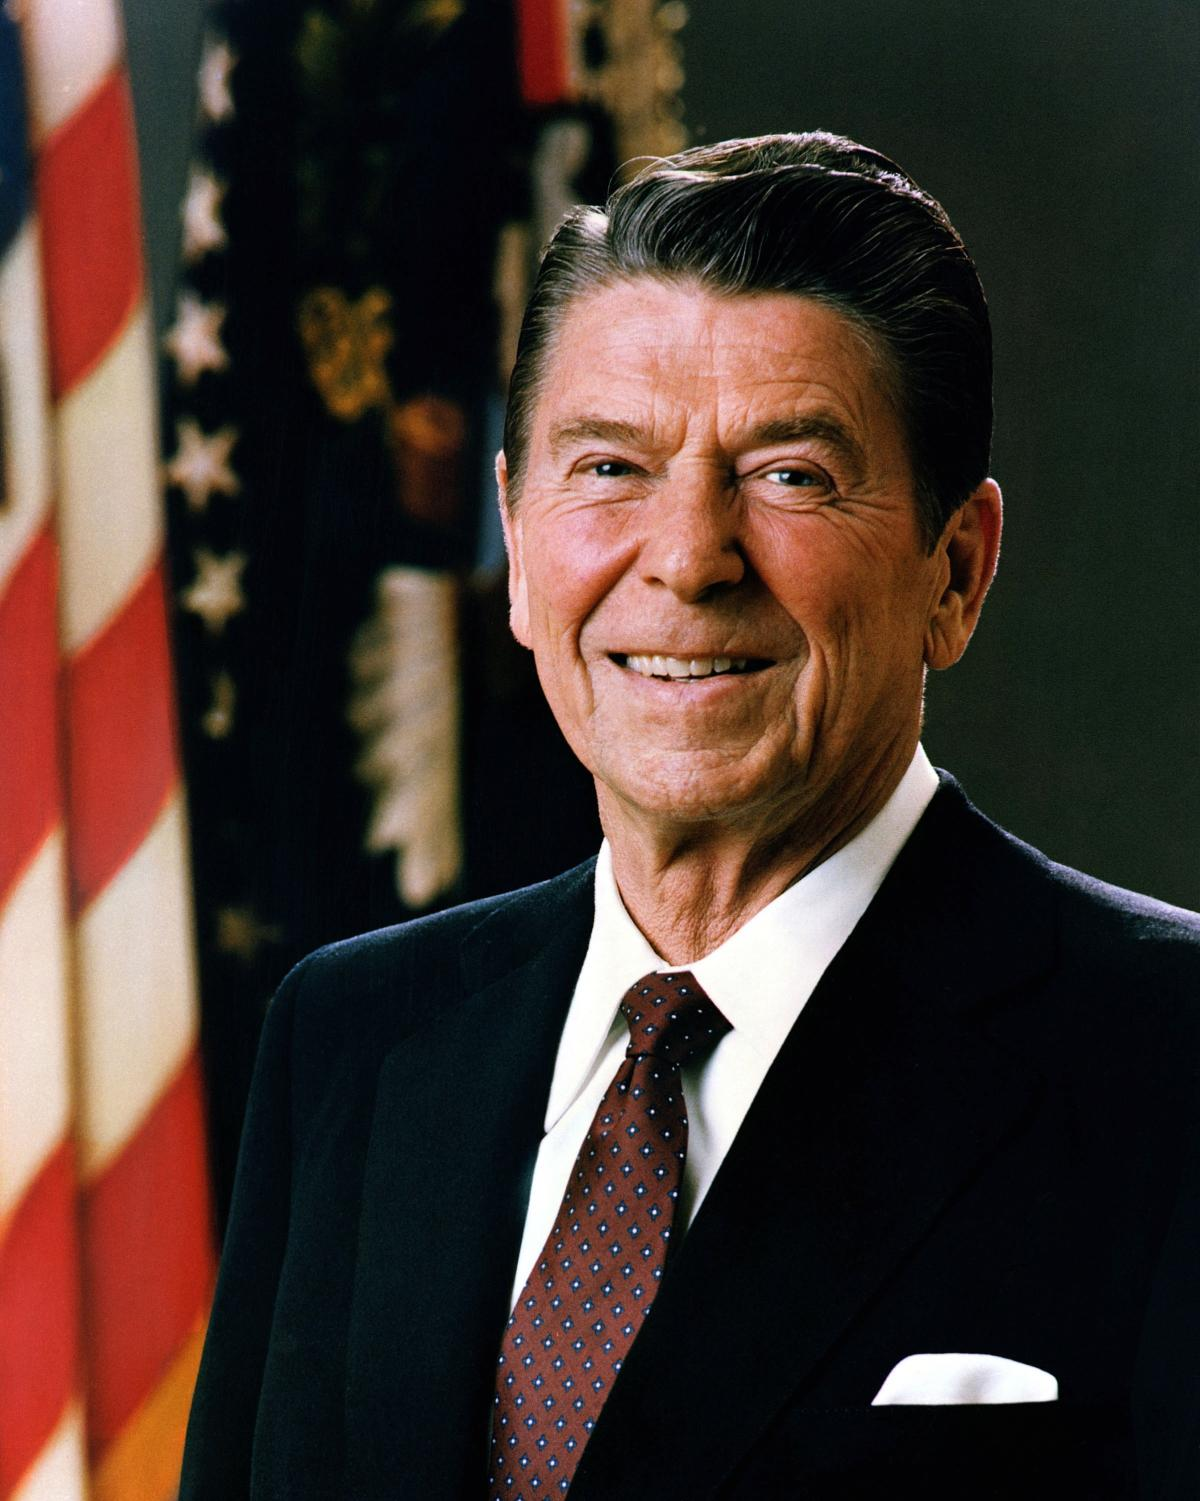 A former film start, President Ronald Reagan is credited by some as the man who ended the Cold War.